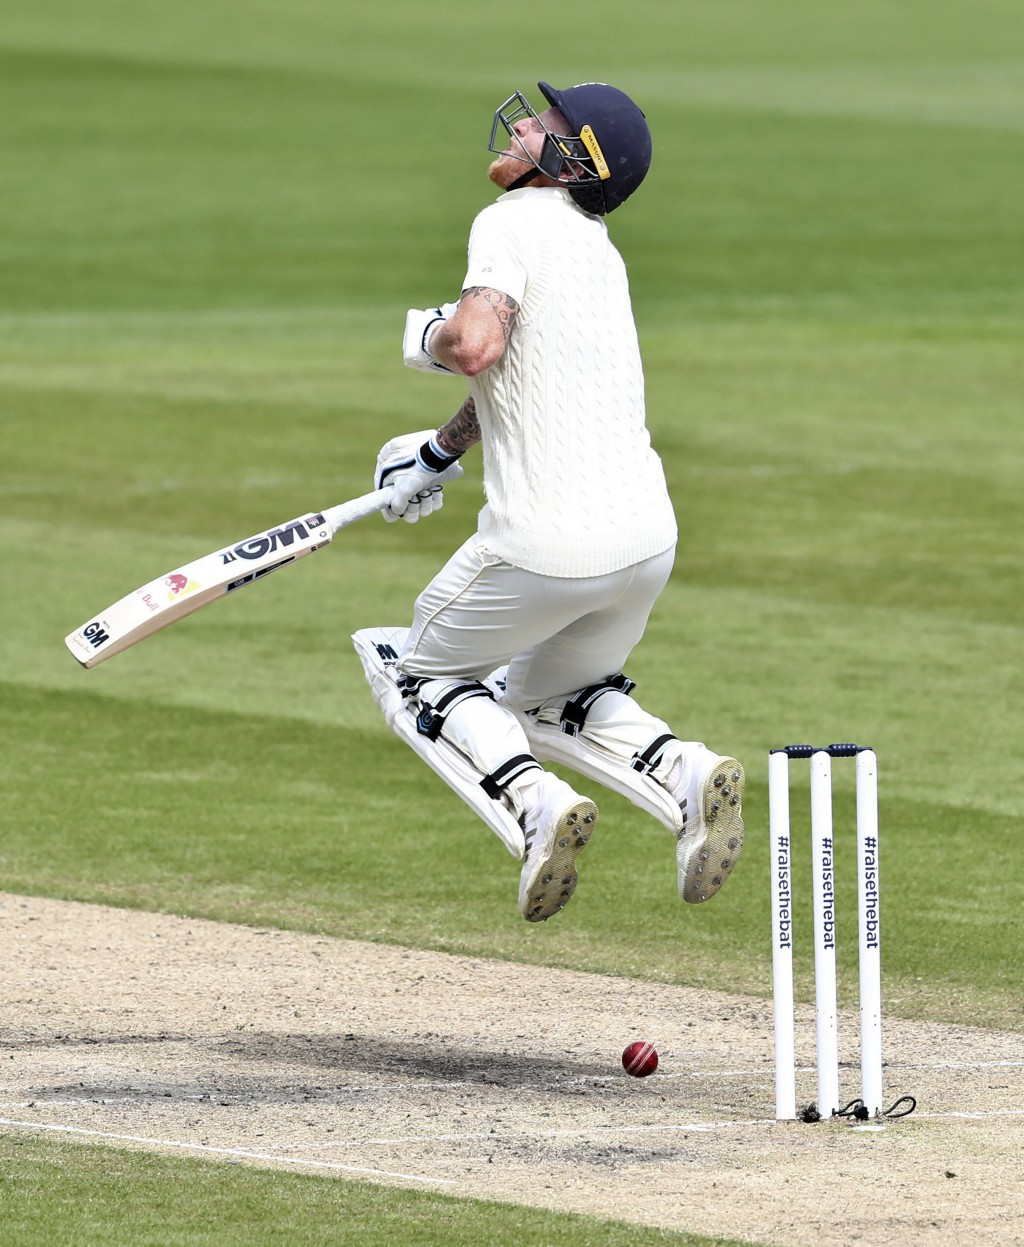 England's Ben Stokes is struck by the ball on a delivery by West Indies' Shannon Gabriel during the second day of the second cricket Test match betwee...